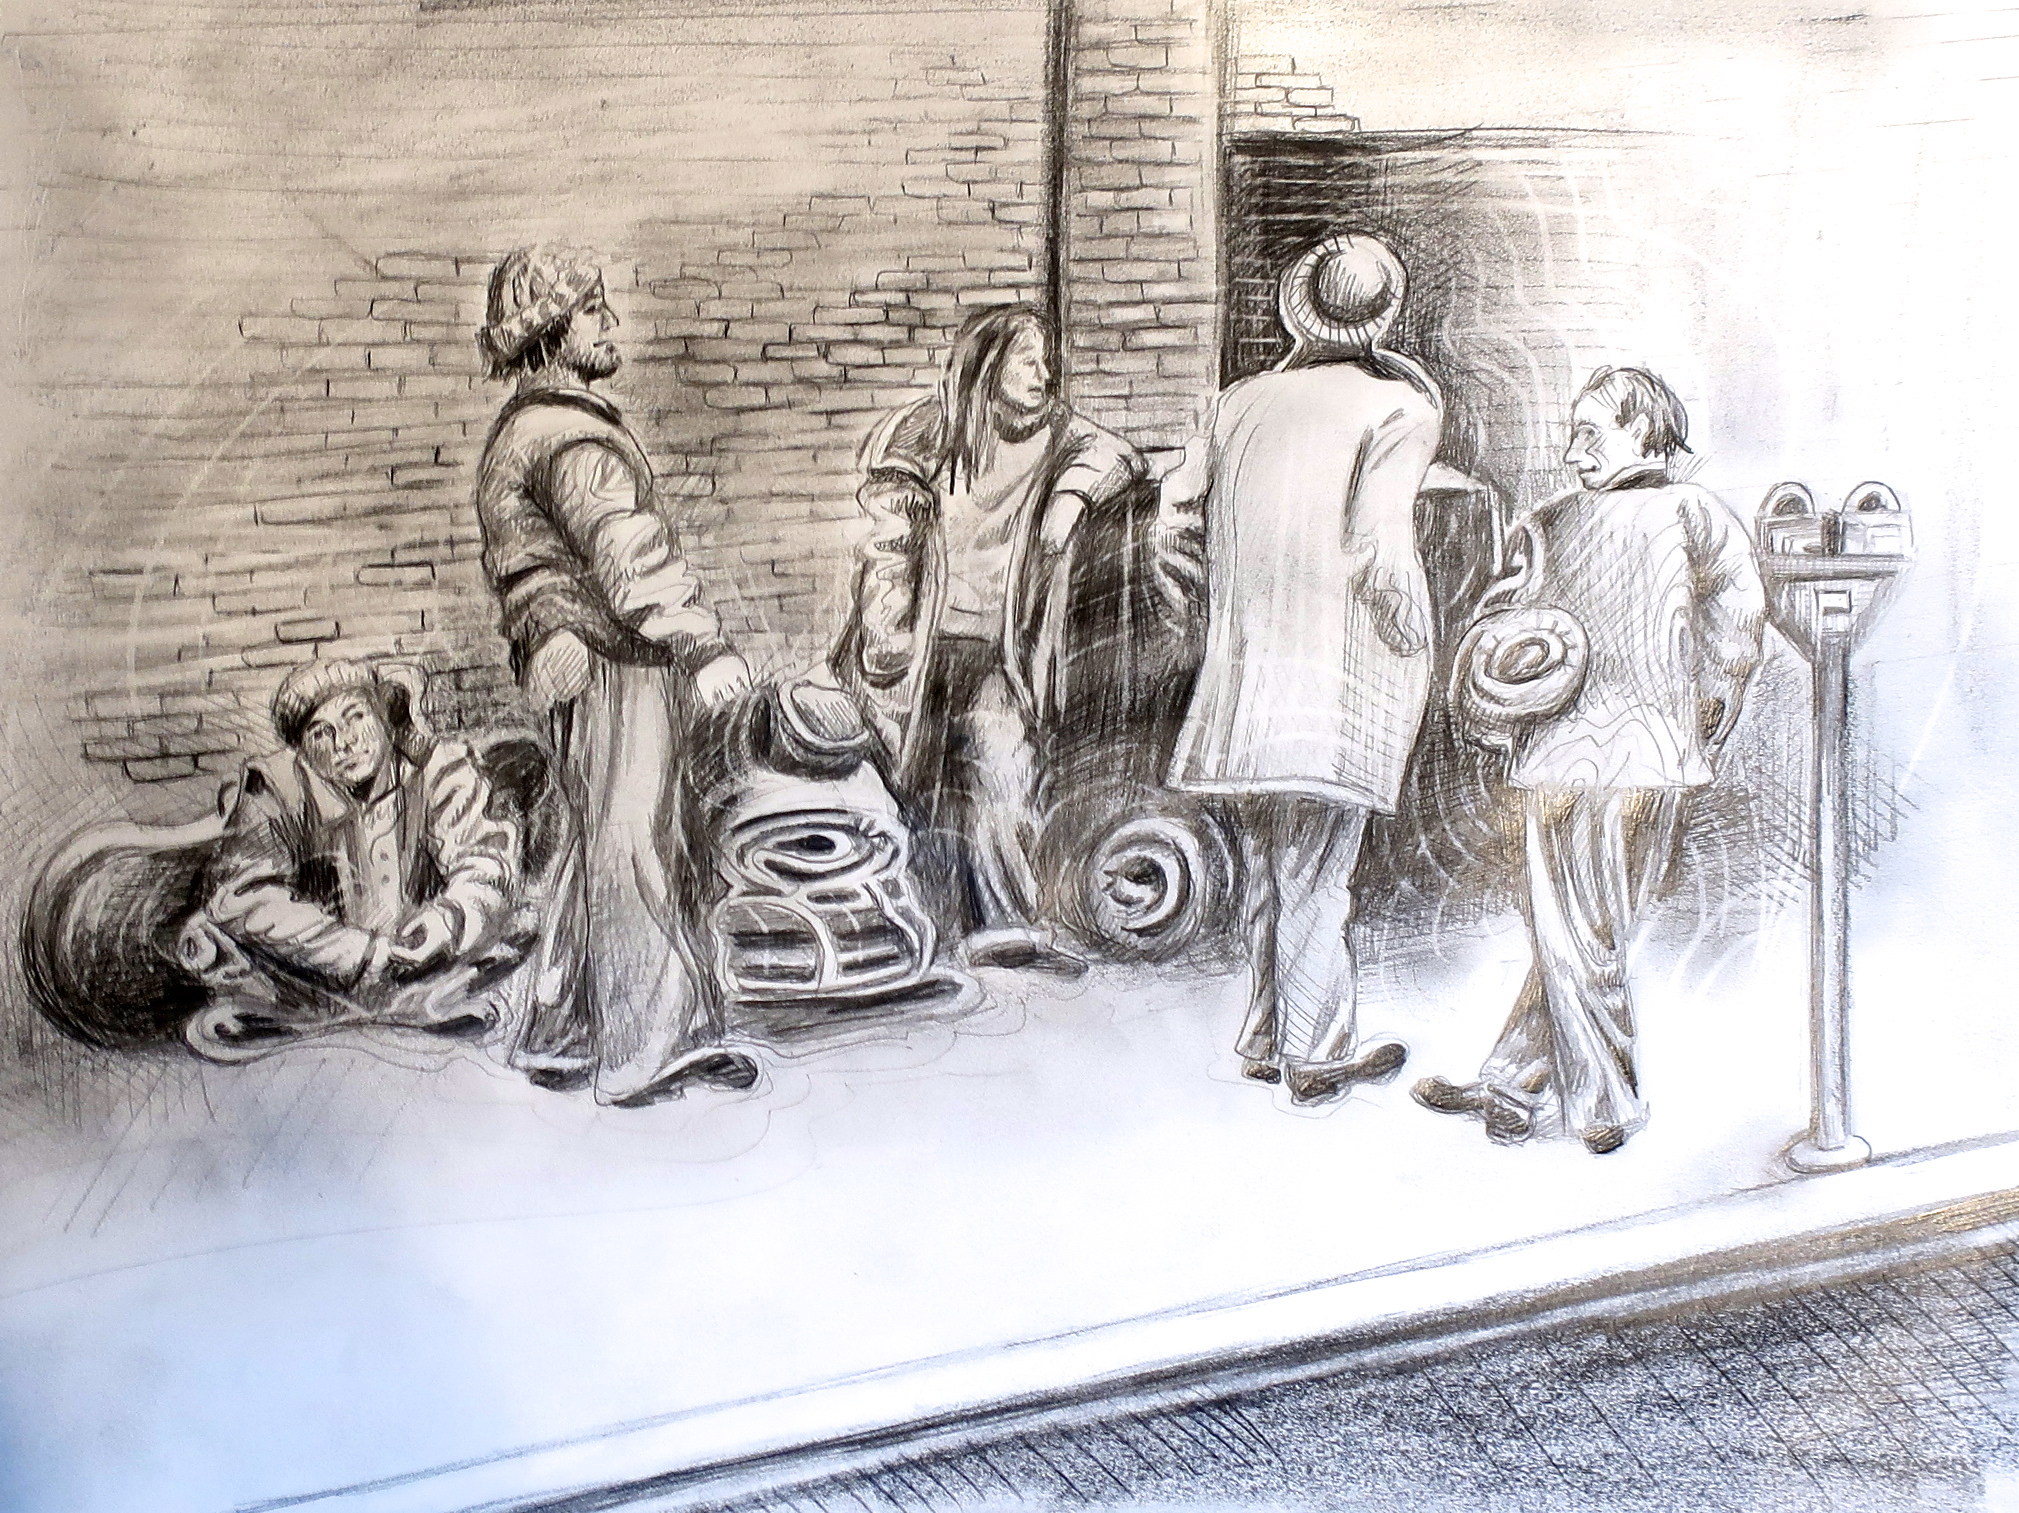 An illustration depicting people with sleeping bags on the sidewalks of Old Town